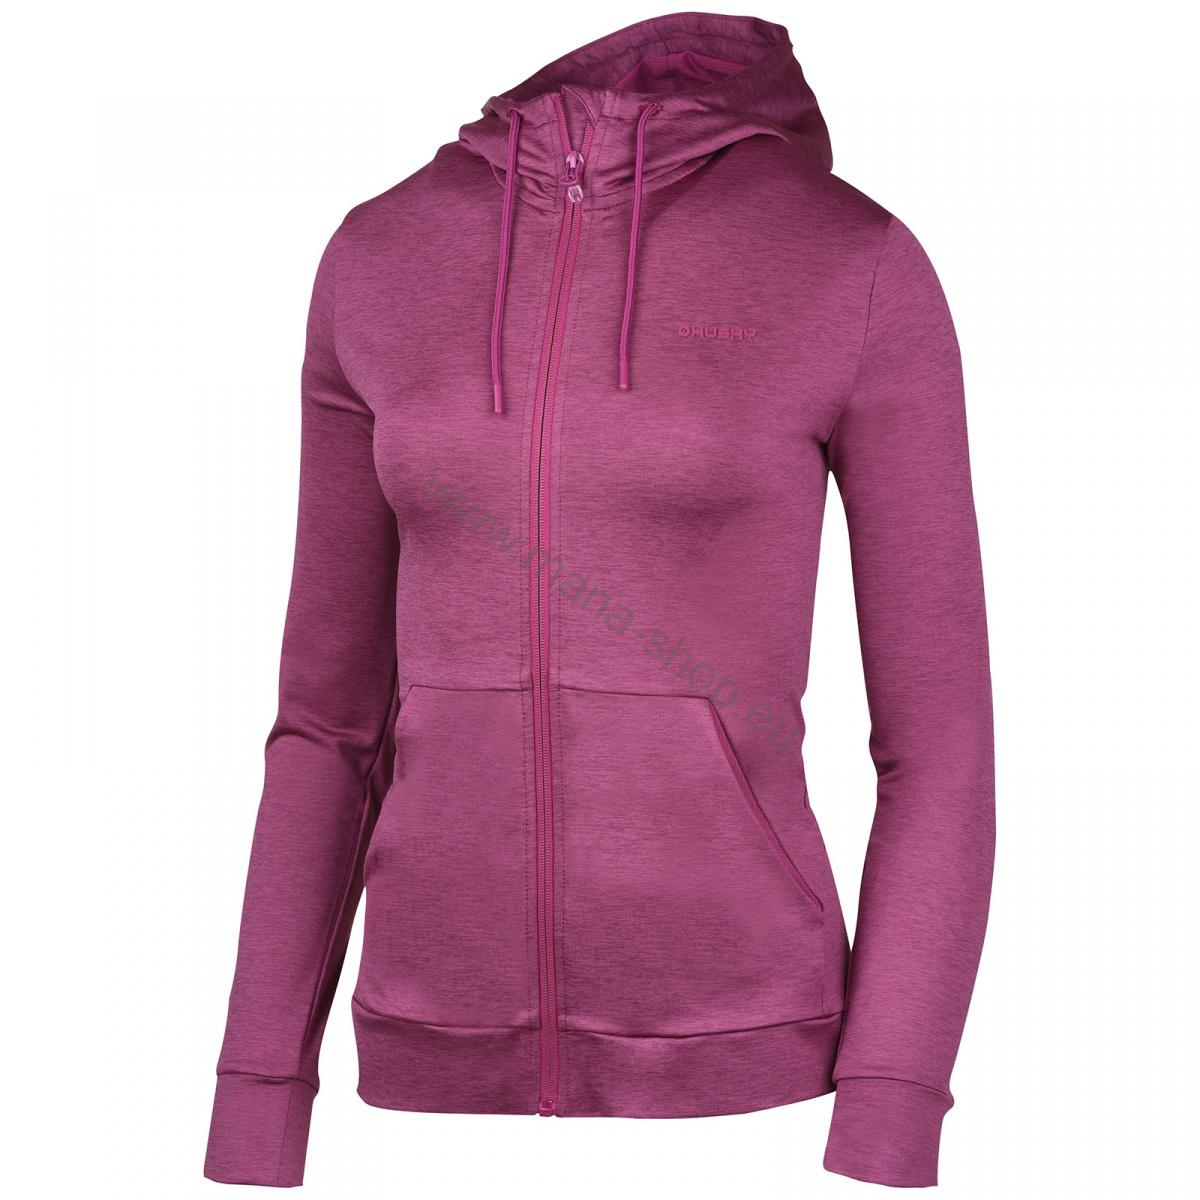 buy online e76aa 15fdc Damen Pullover ALONY L NEW weinrot